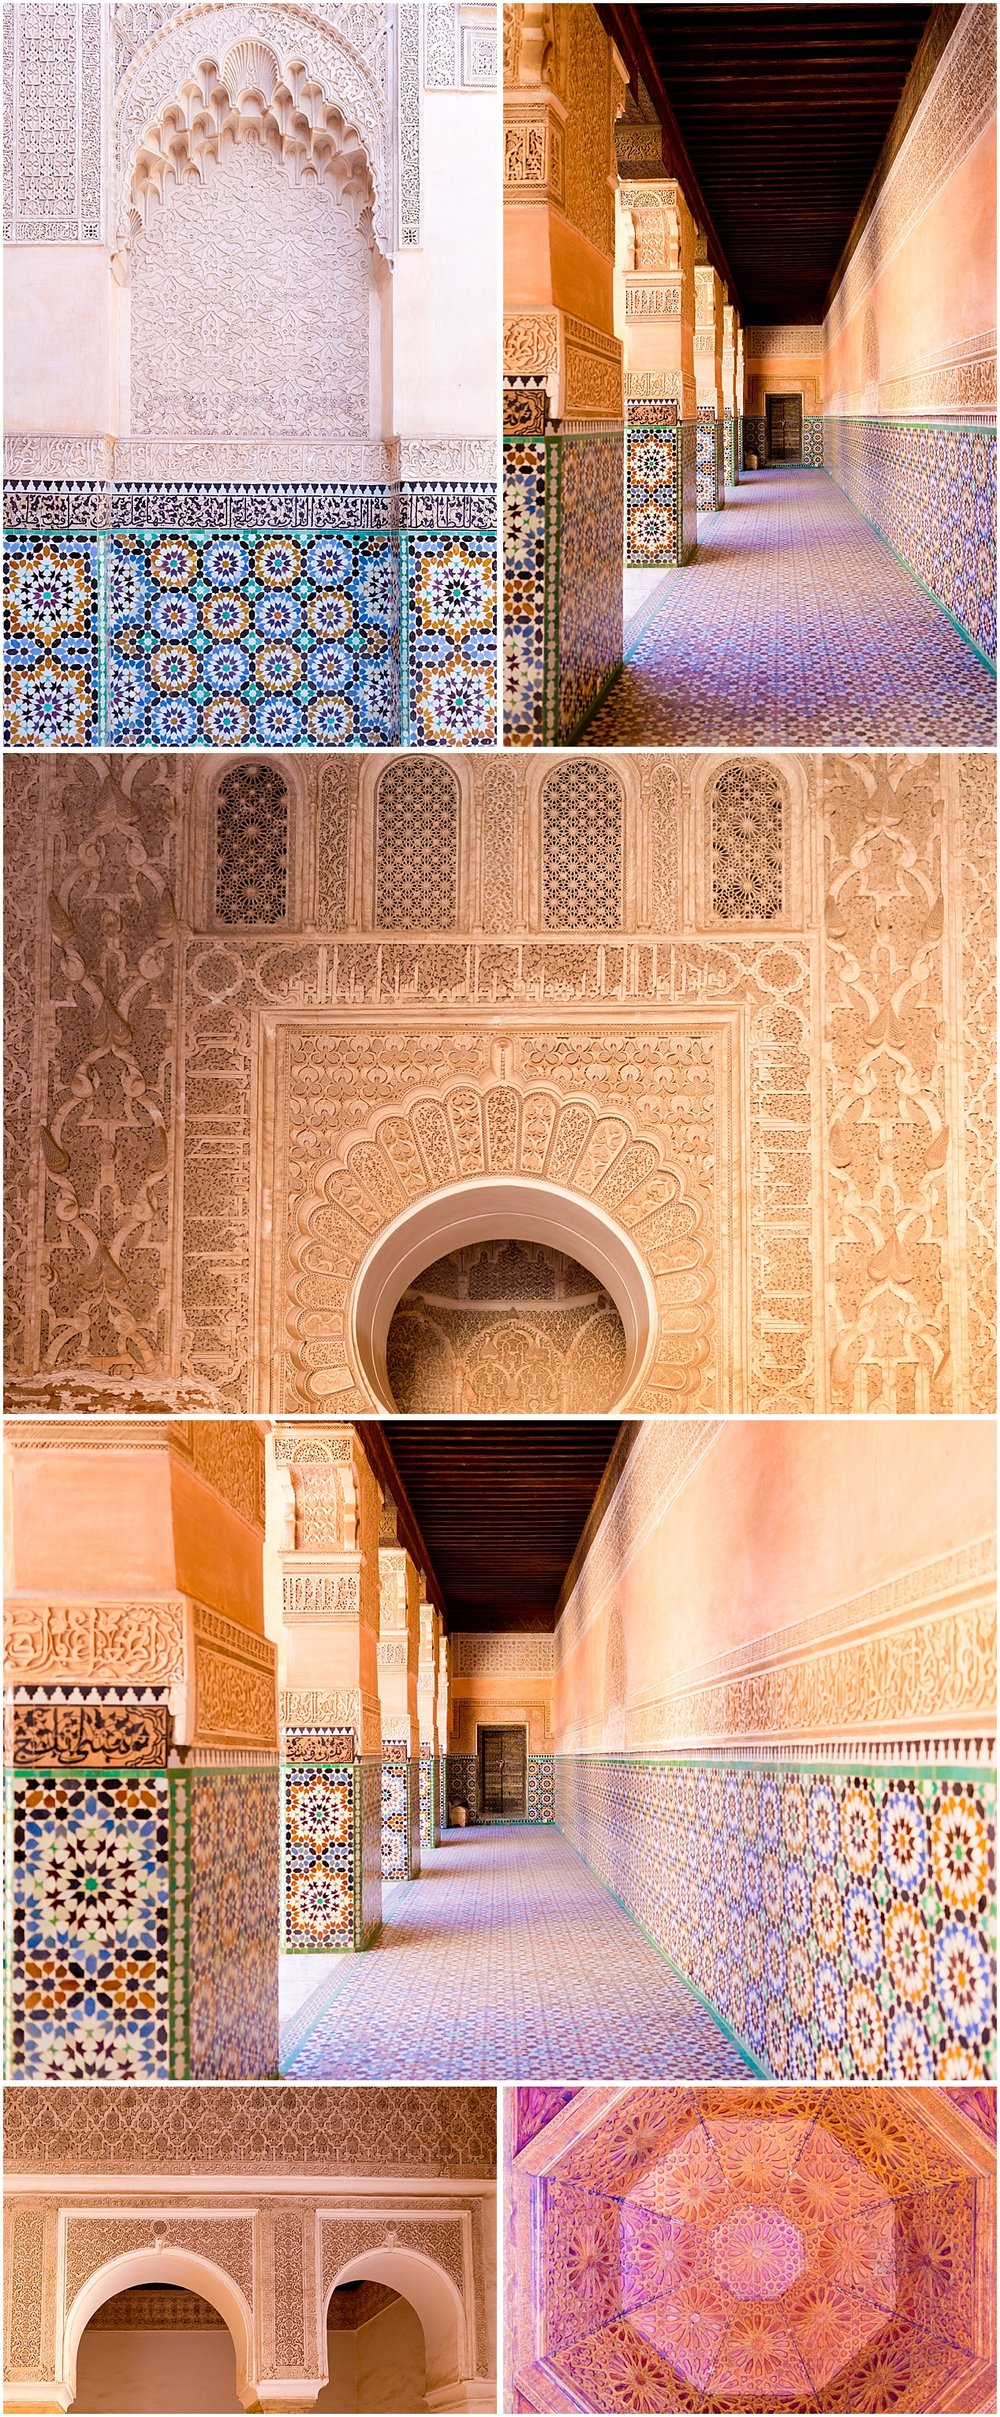 corridors, woodwork, and mosaic tile at Medersa Ben Youssef (Marrakech travel blog)